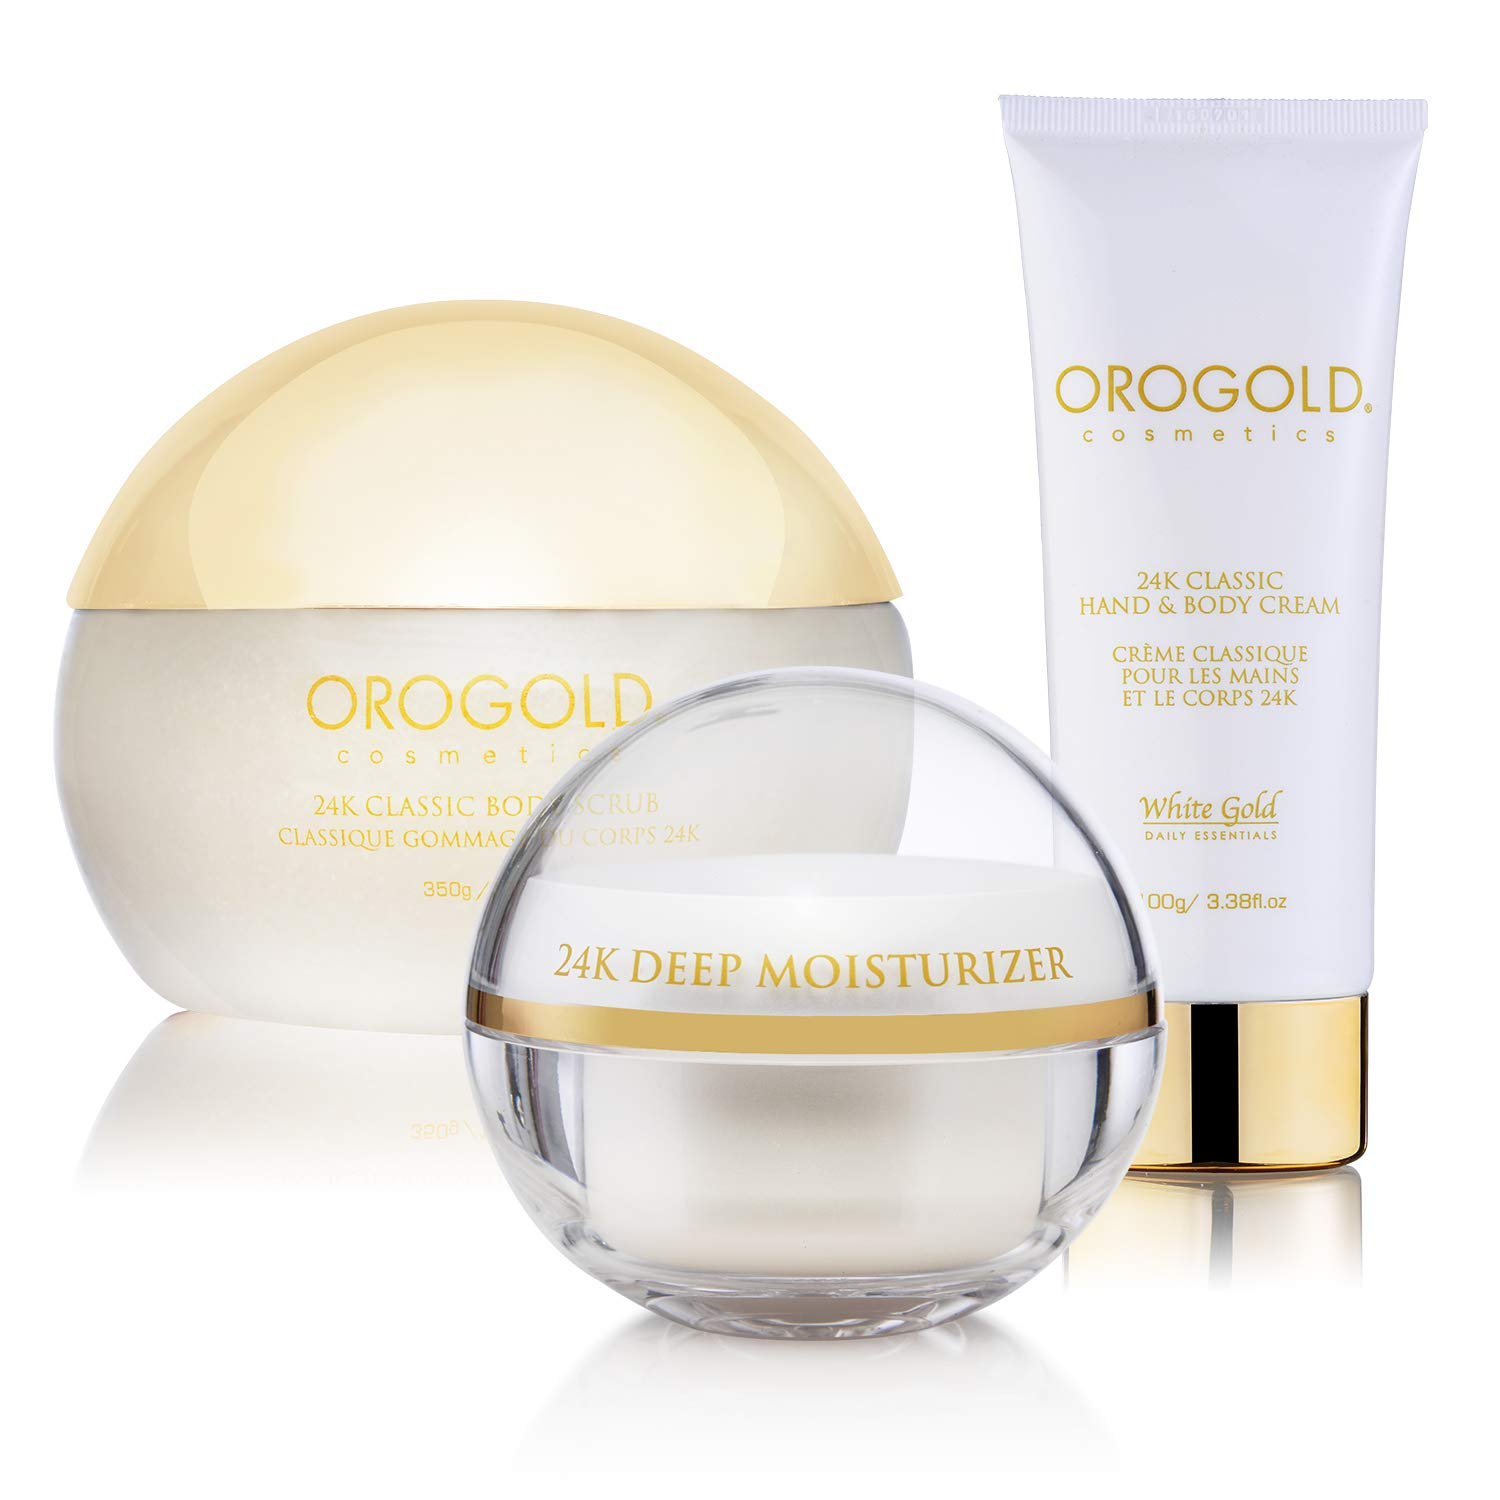 24K Luxury Gifts From Orogold   Gift Hamper Of Gold Specked Skin Care Products   Liven Up The Season With This Gilded Booty   Hug The Friendly Snowman   Share The Moment   Time To Shake A Leg